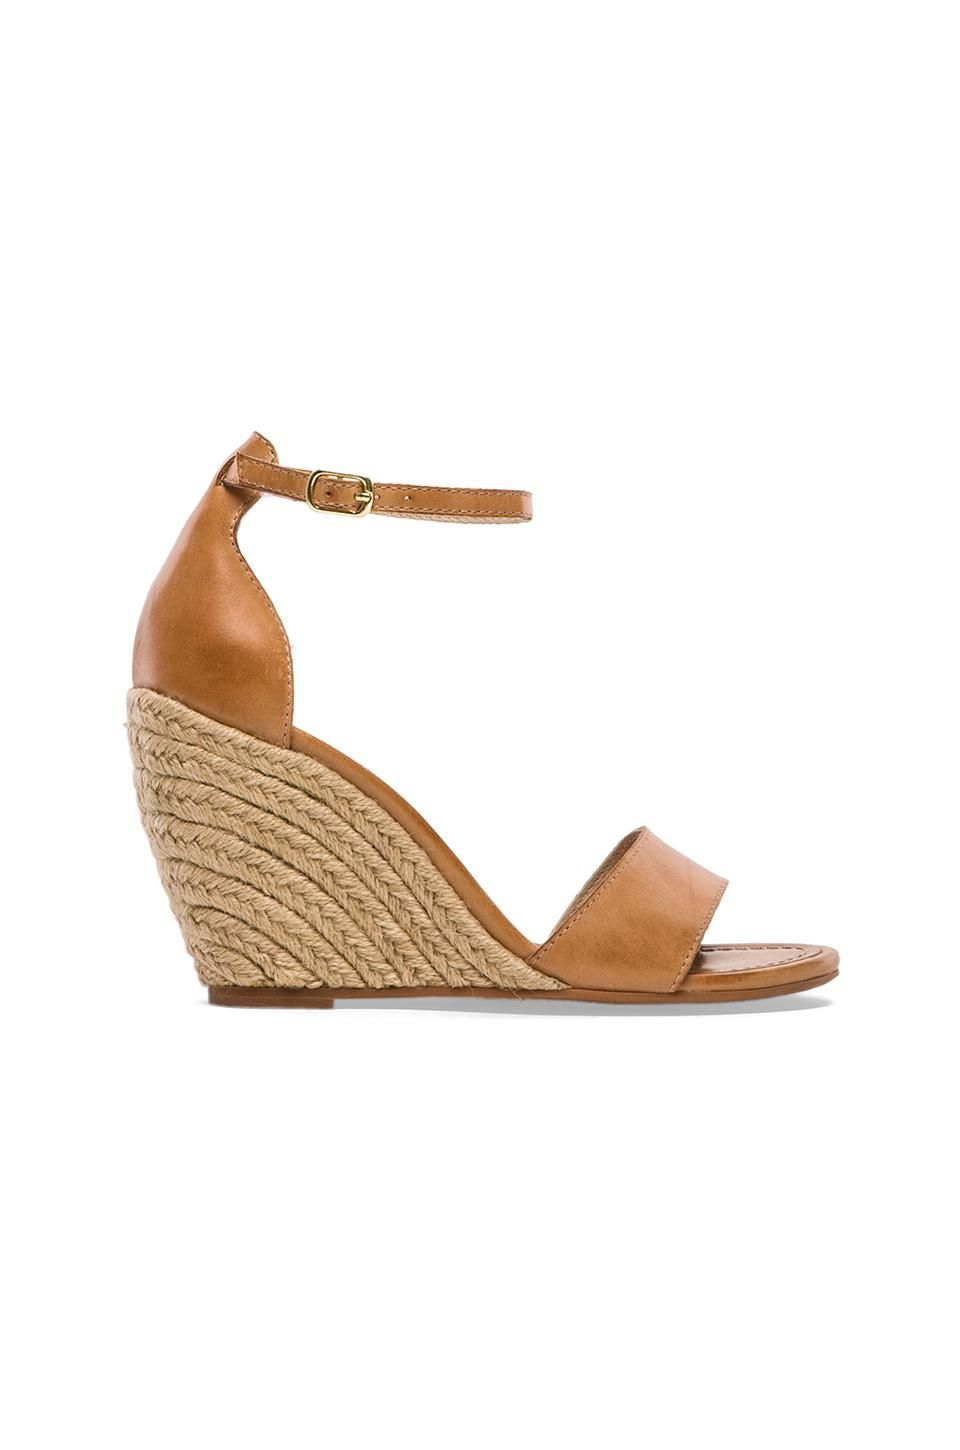 Seychelles Thyme Wedge in Luggage Leather $95